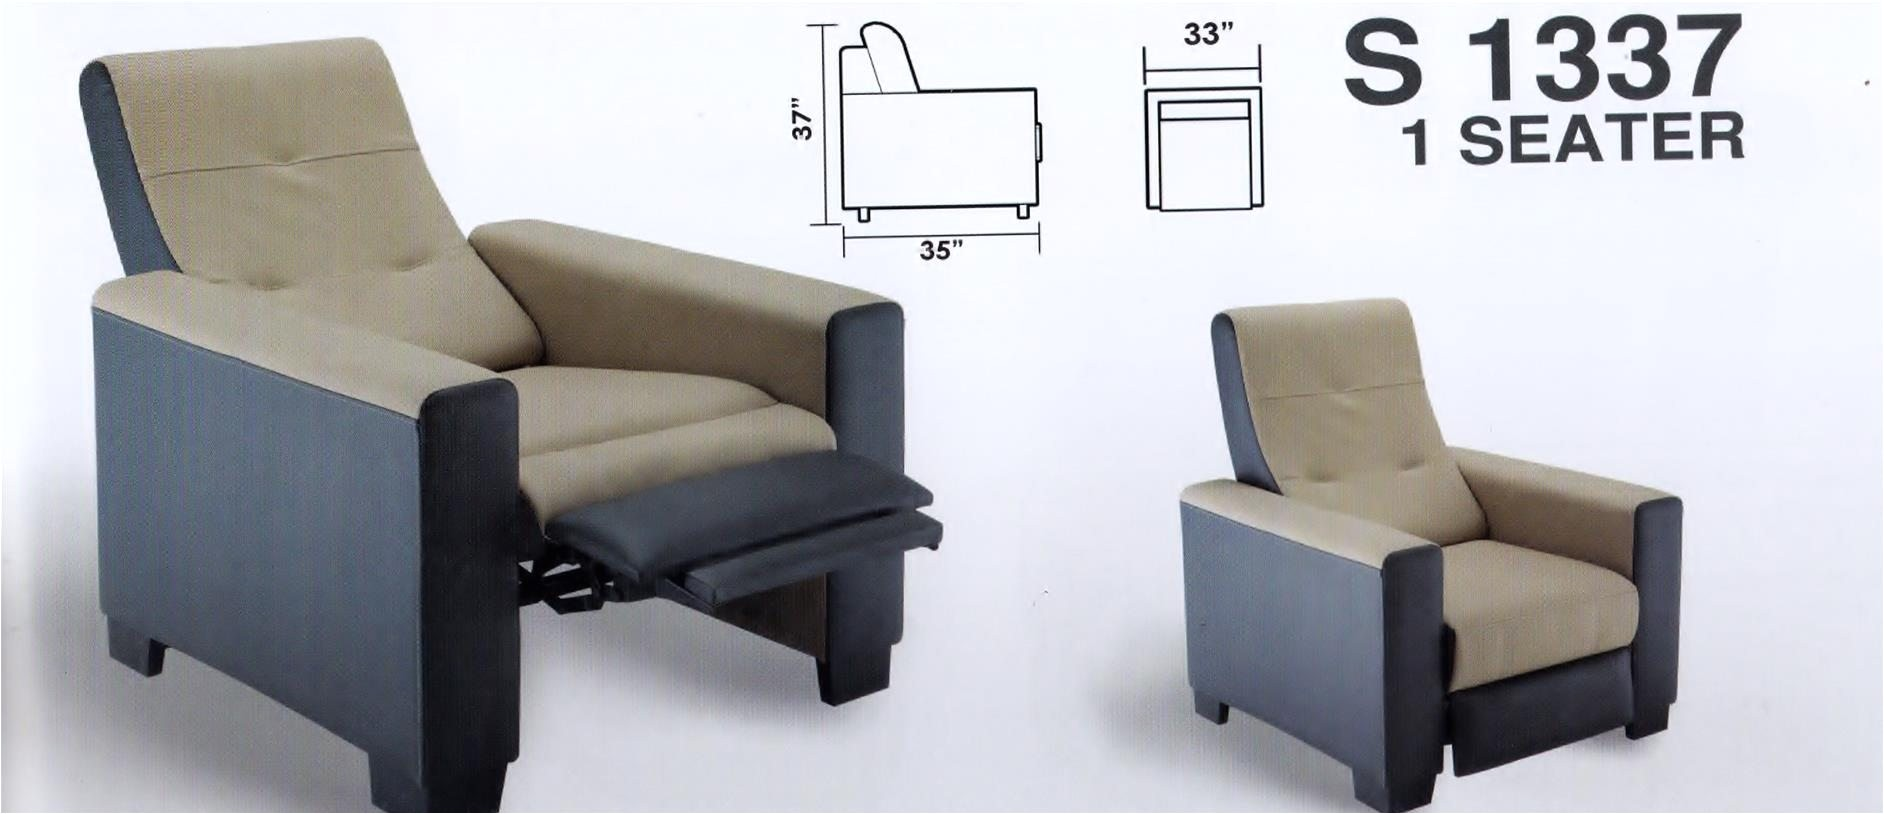 Leather Yoga Chair Stretch Sofa Relax Gorgeous